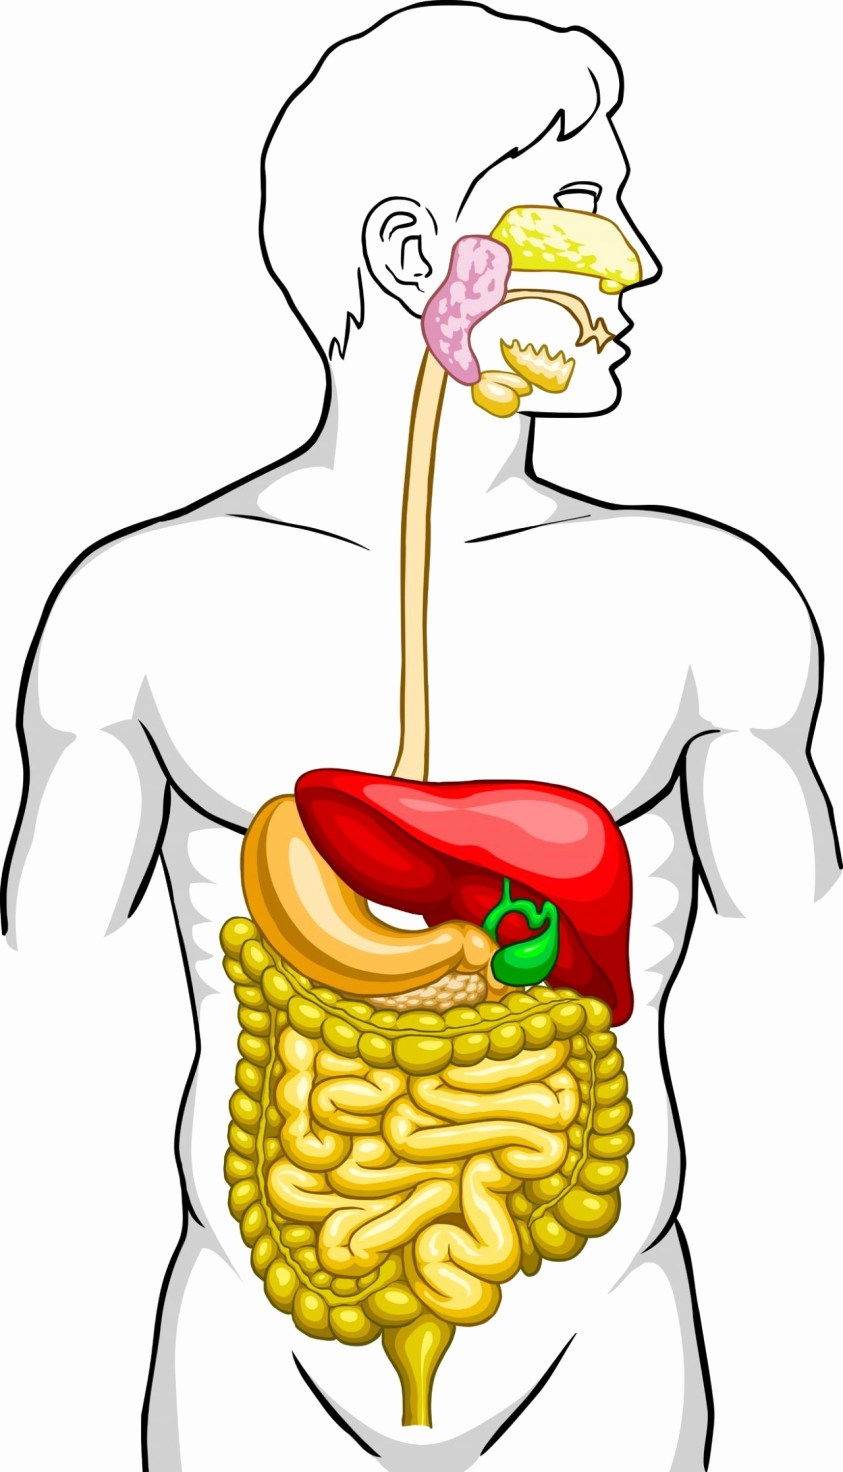 Human Digestive System Drawing | Free download on ClipArtMag